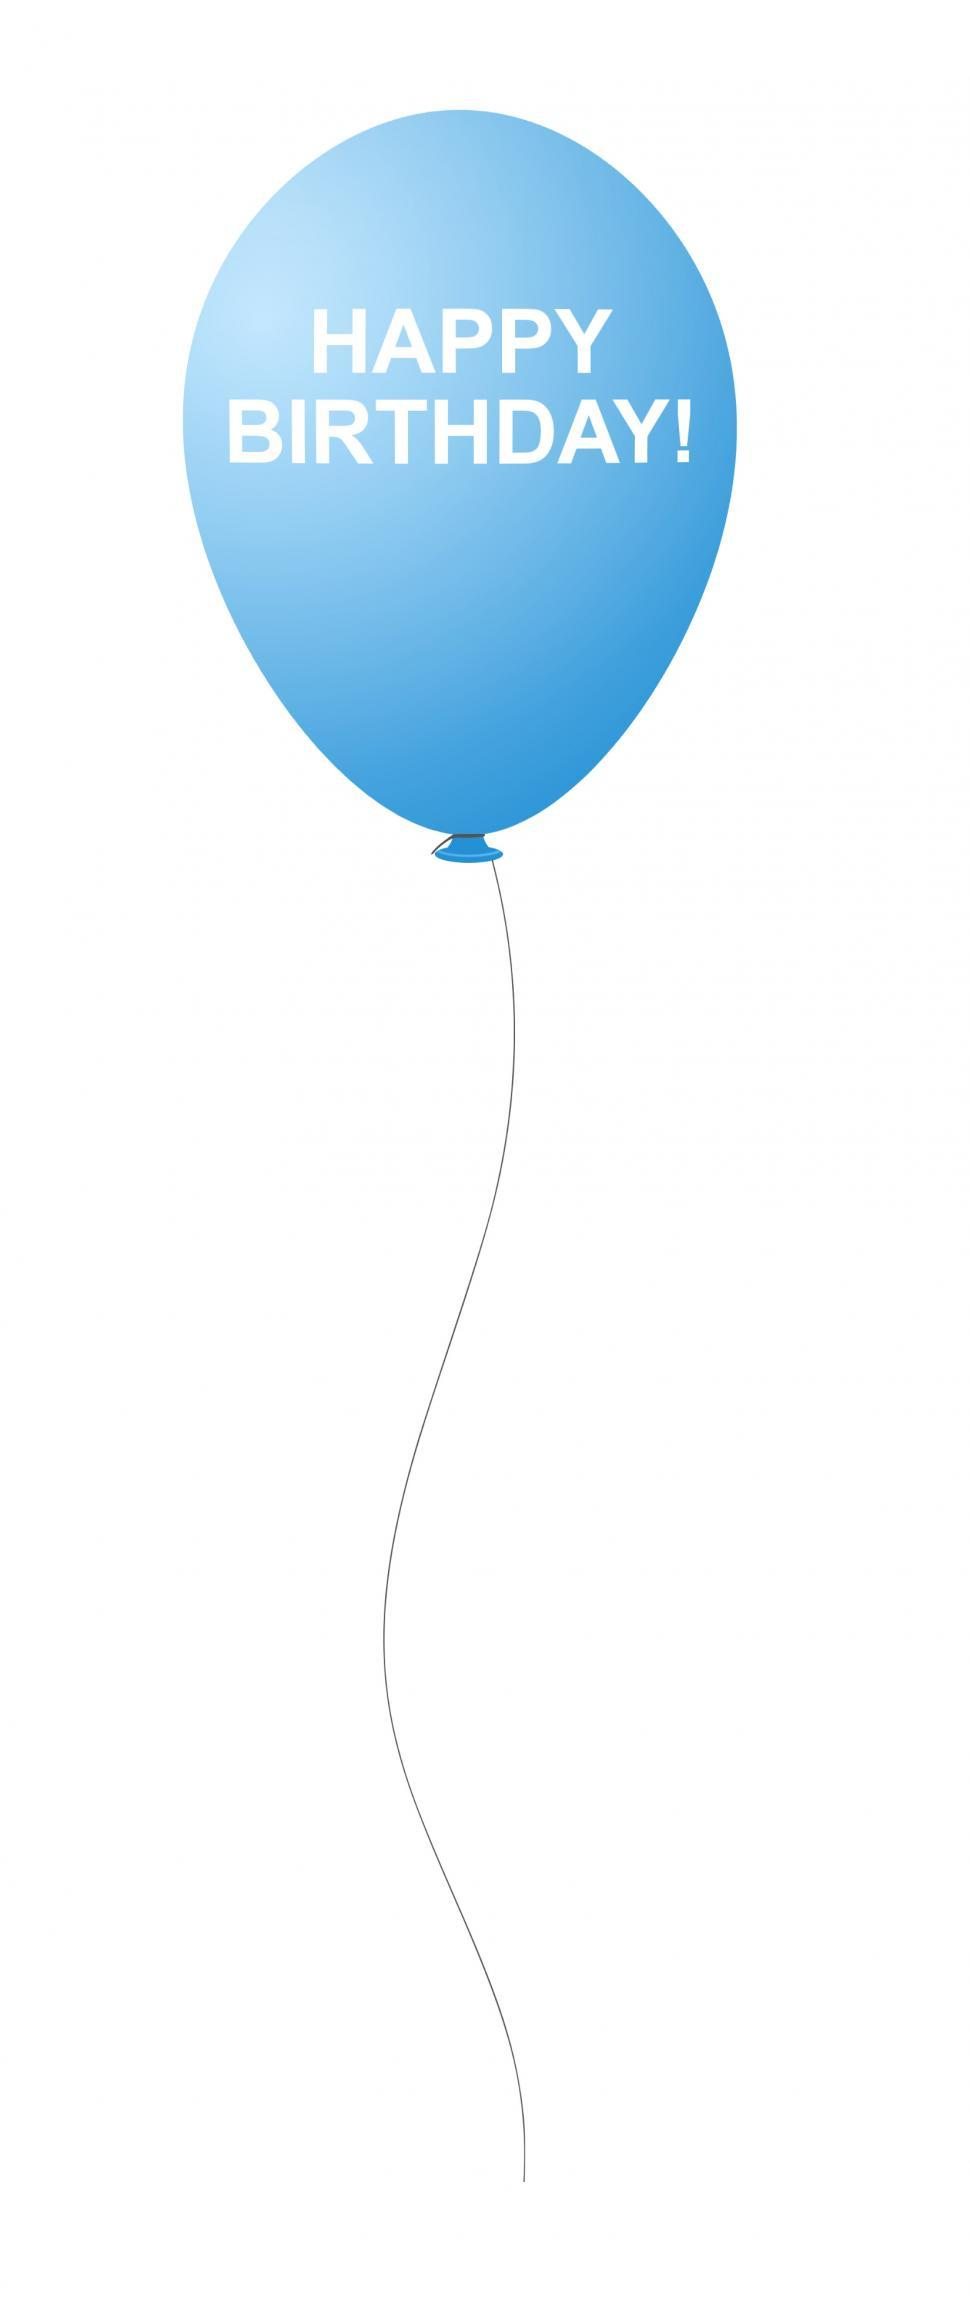 Download Free Stock HD Photo Of Blue Happy Birthday Balloon Online